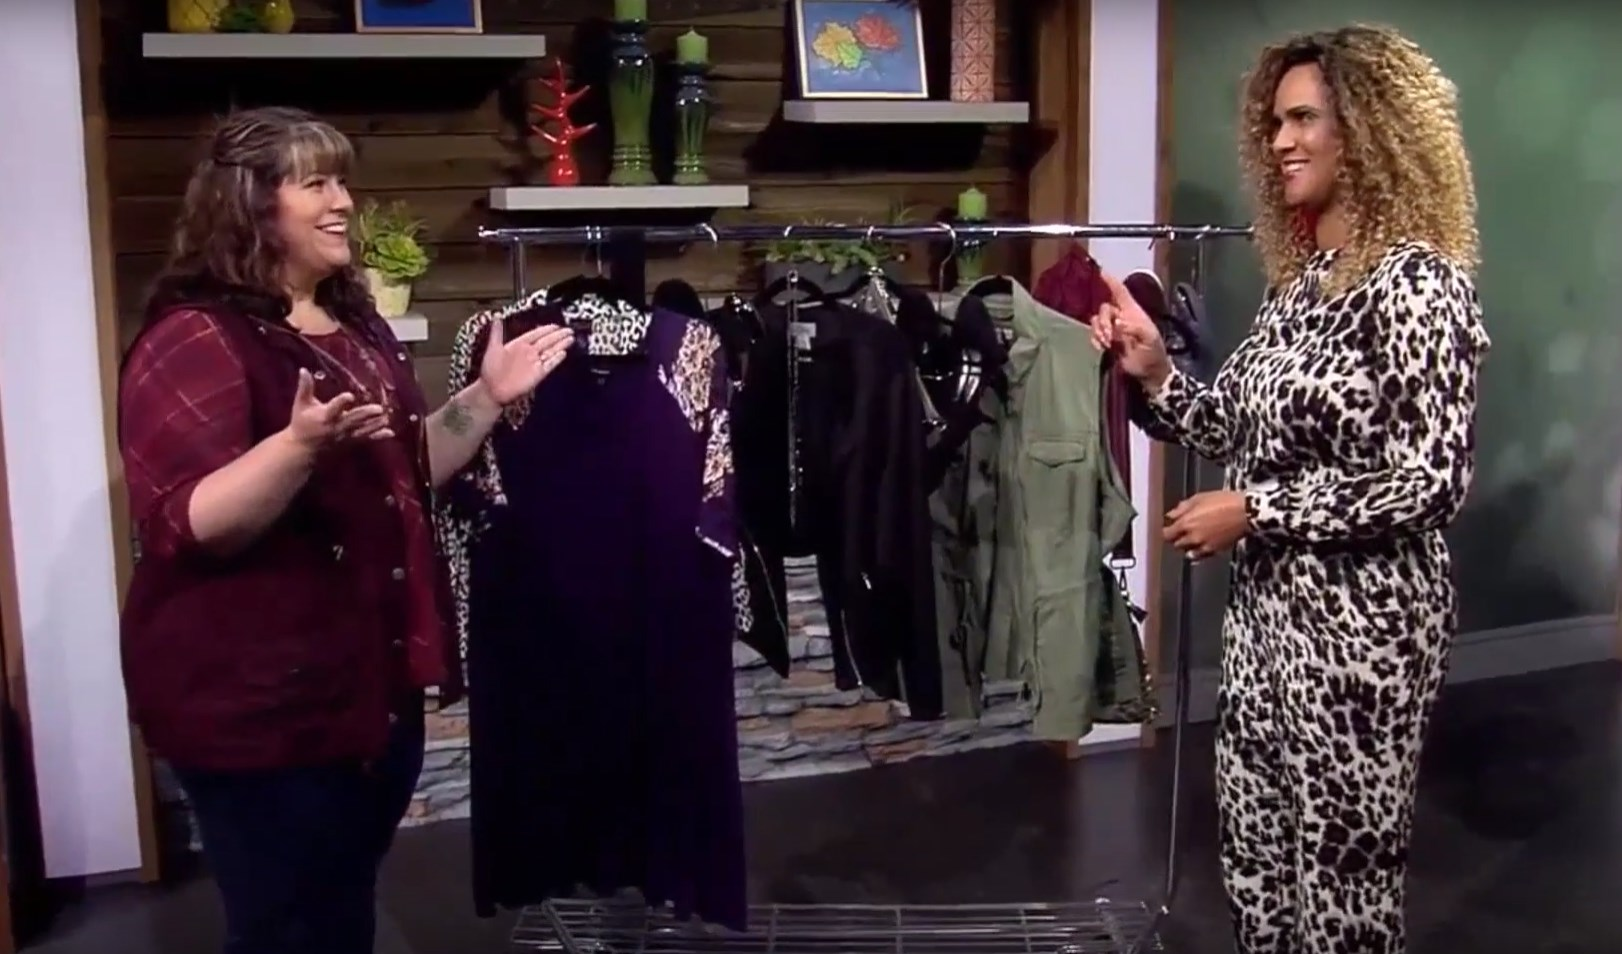 KATU Afternoon Live (10/04/2019) One Dress, Three Ways - DivineMrsDiva.com